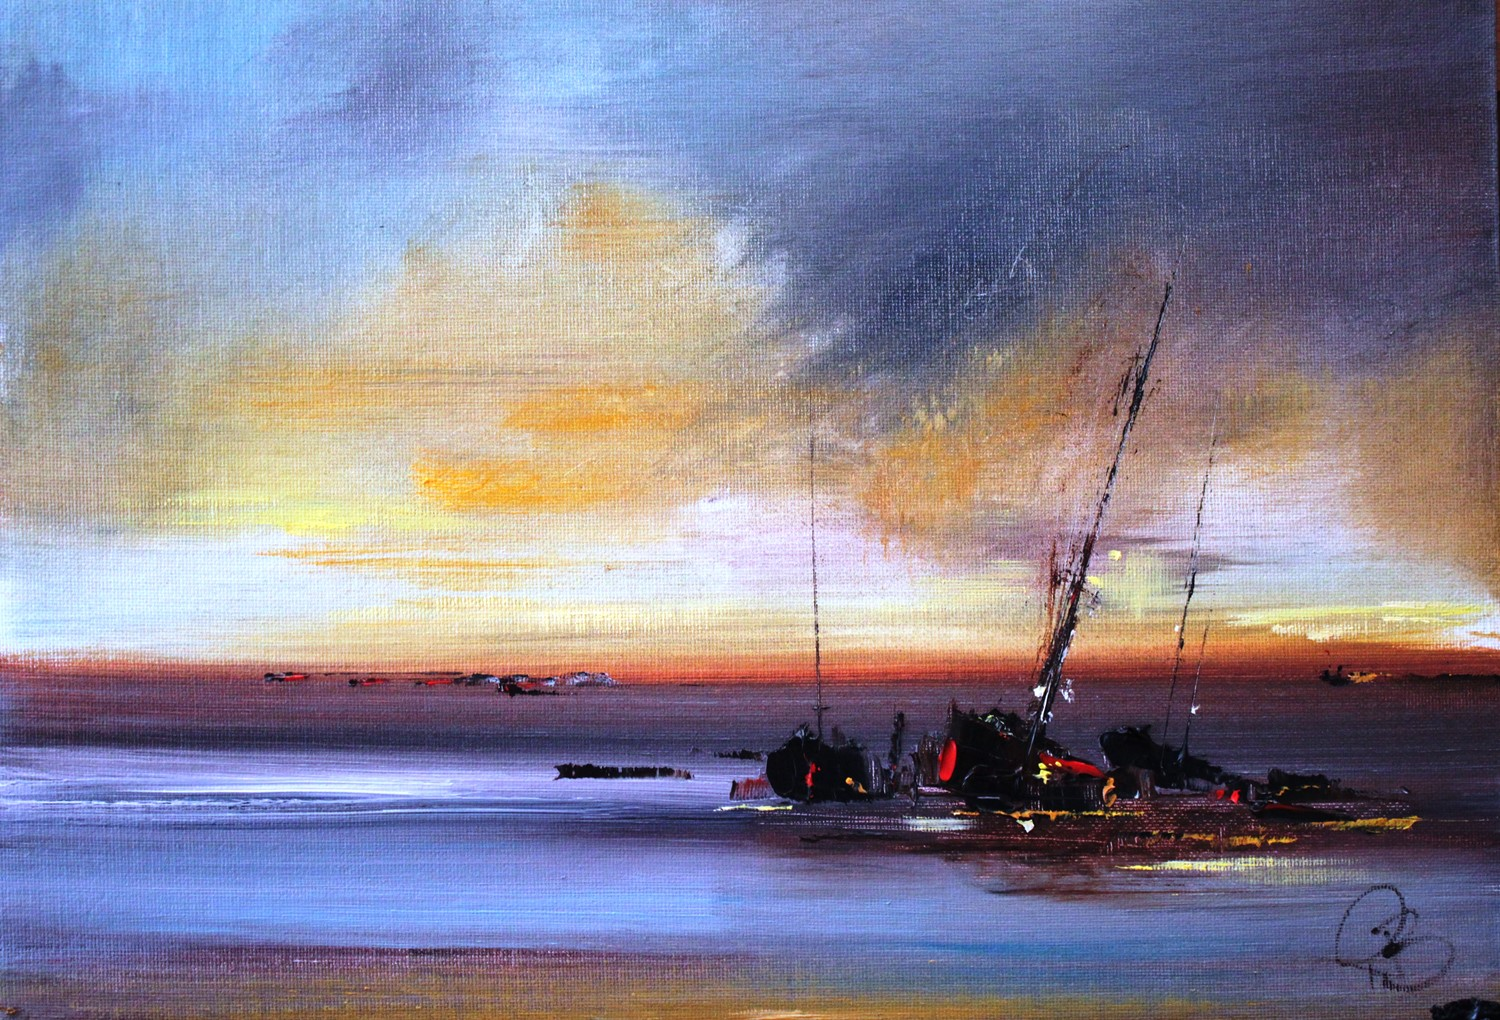 'The Gloaming II' by artist Rosanne Barr